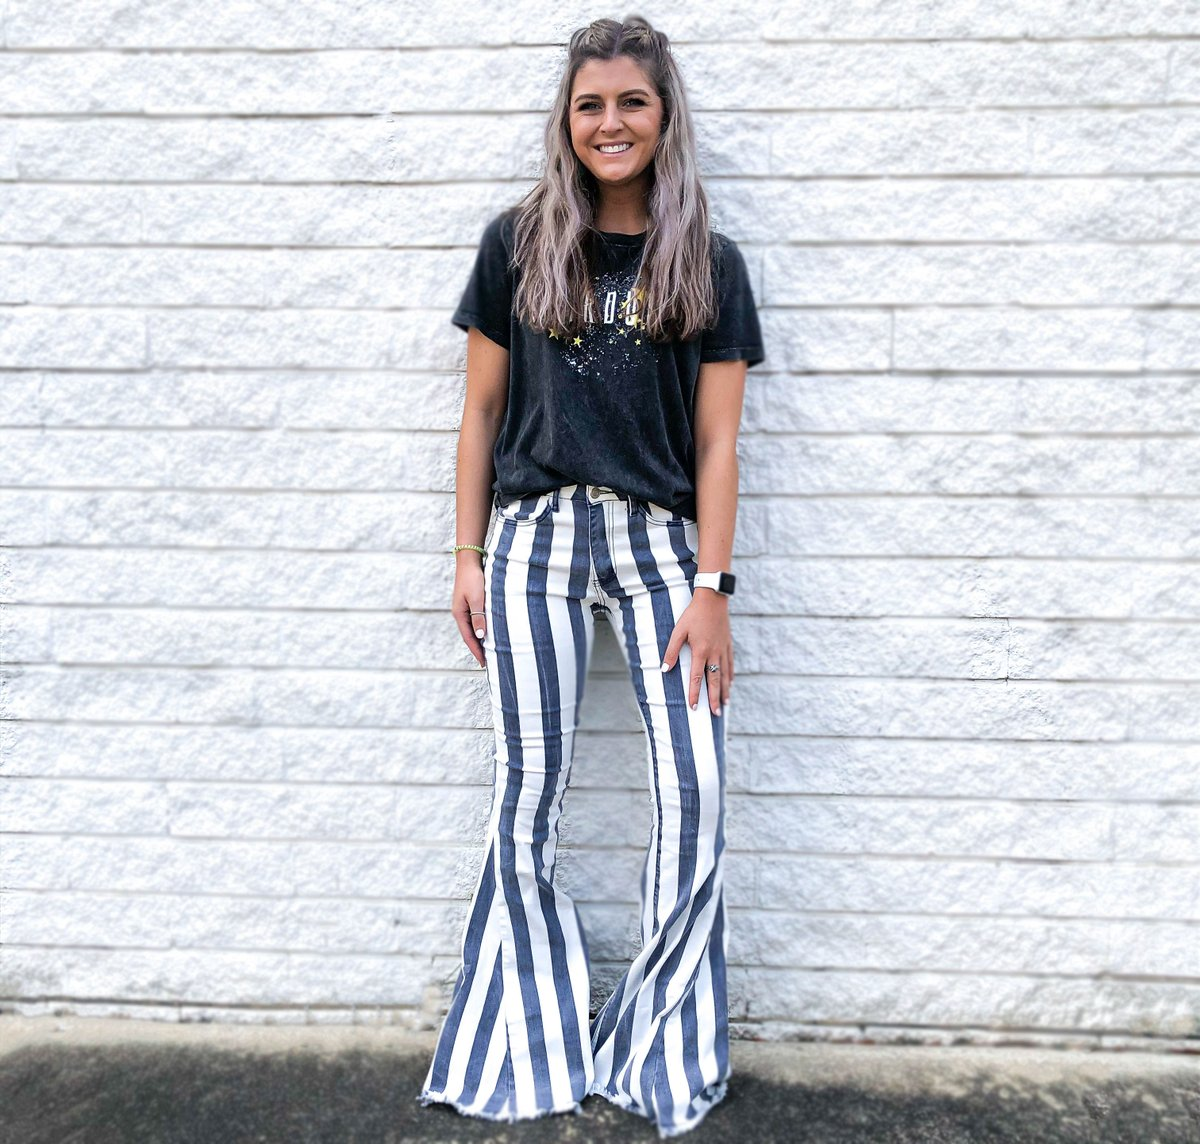 It's #ThrowbackThursday!! || These striped bell-bottoms are a BIG DEAL! || Snag yourself a pair before they're gone. #DFOStyle #FlareJeans #StripedBellBottoms #OOTD